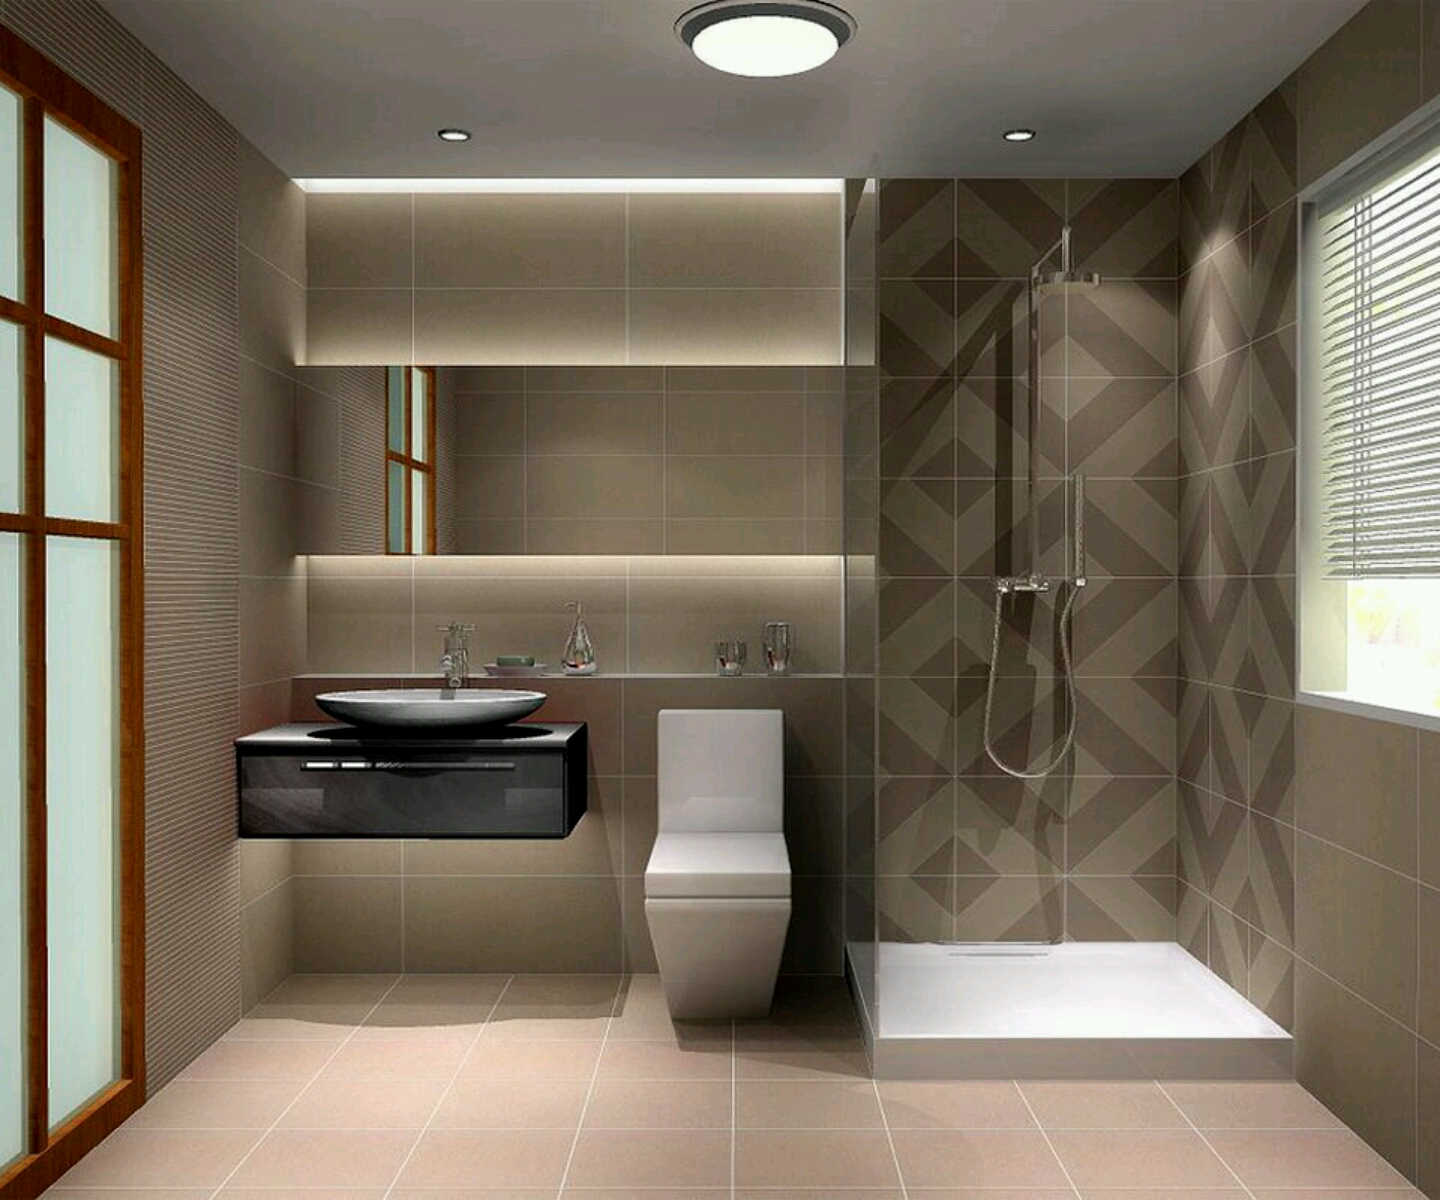 Small modern bathroom design 2017 grasscloth wallpaper for Modern bathroom design small